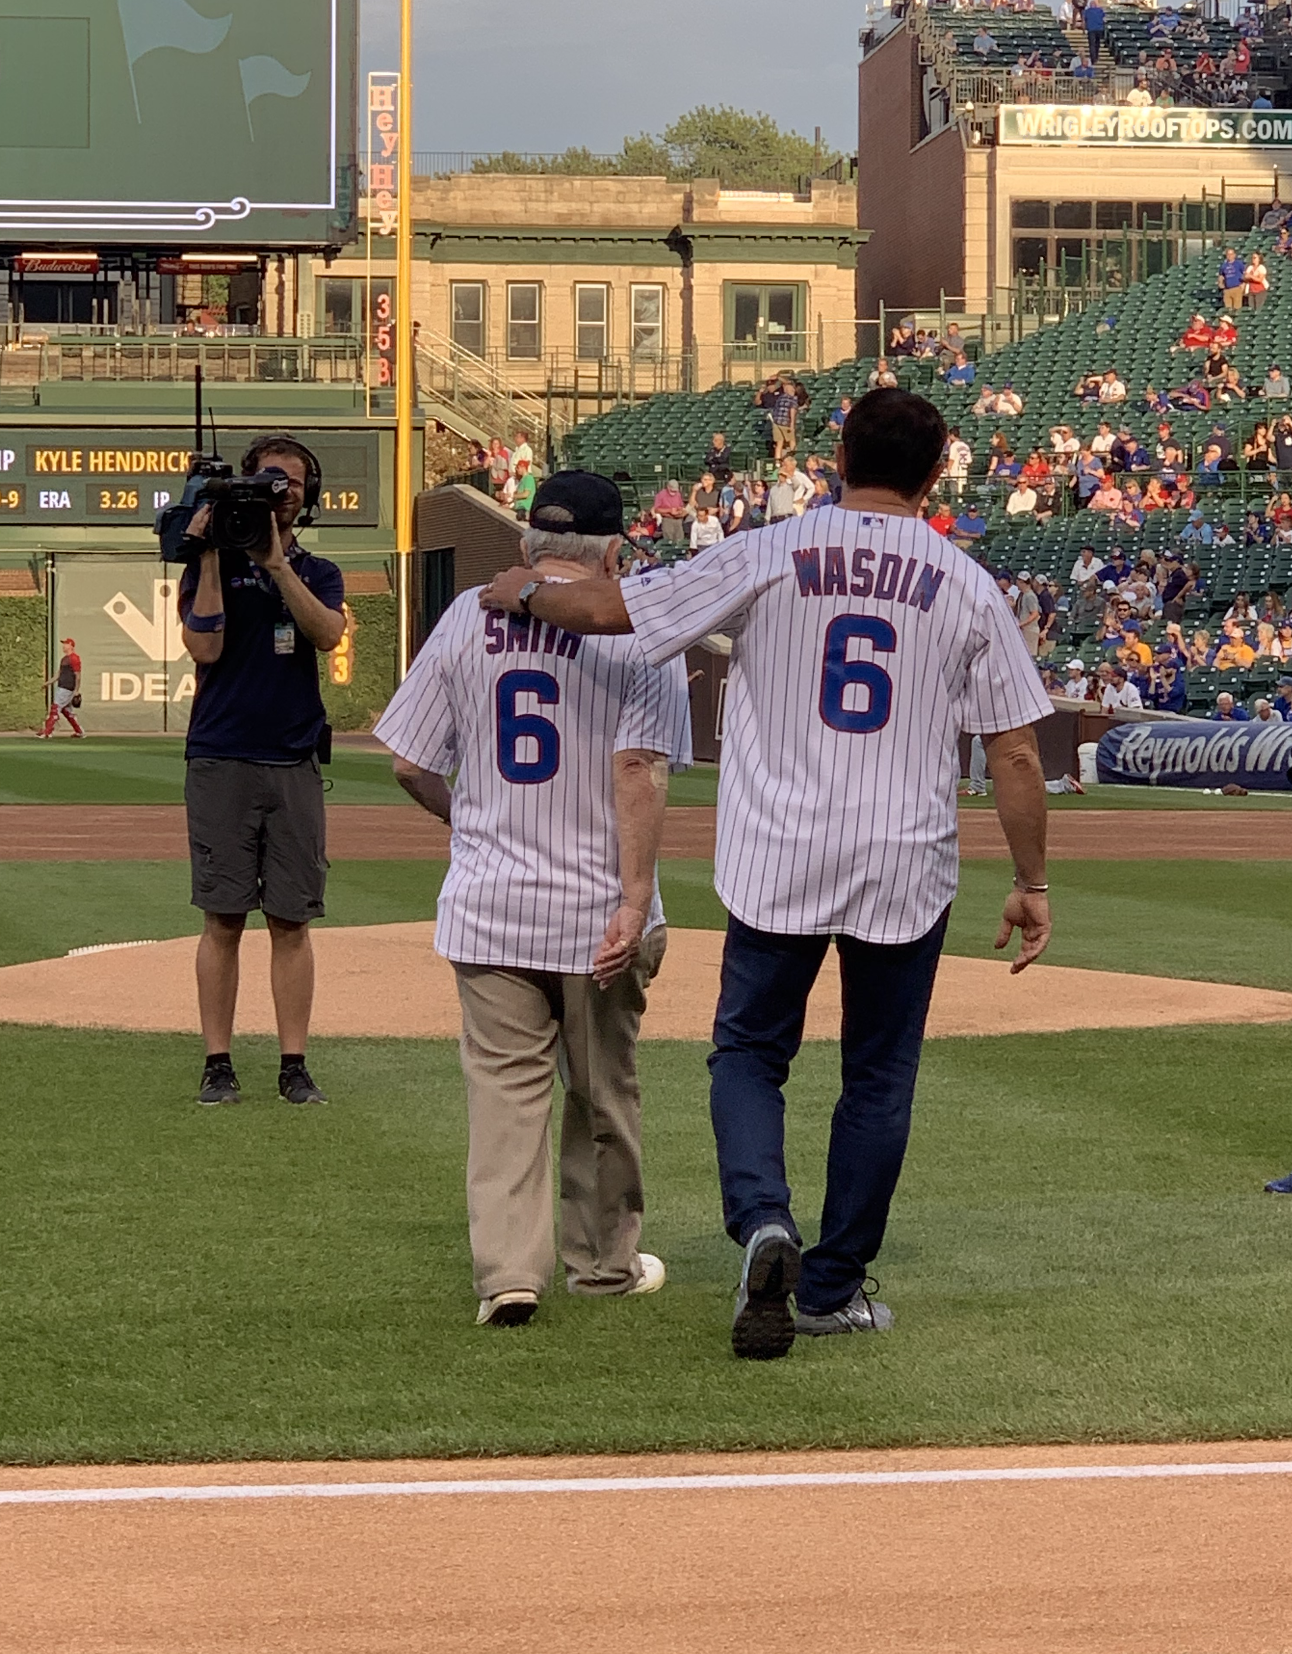 Howard is joined by his Uncle and WWII Vet to throw out the first pitch